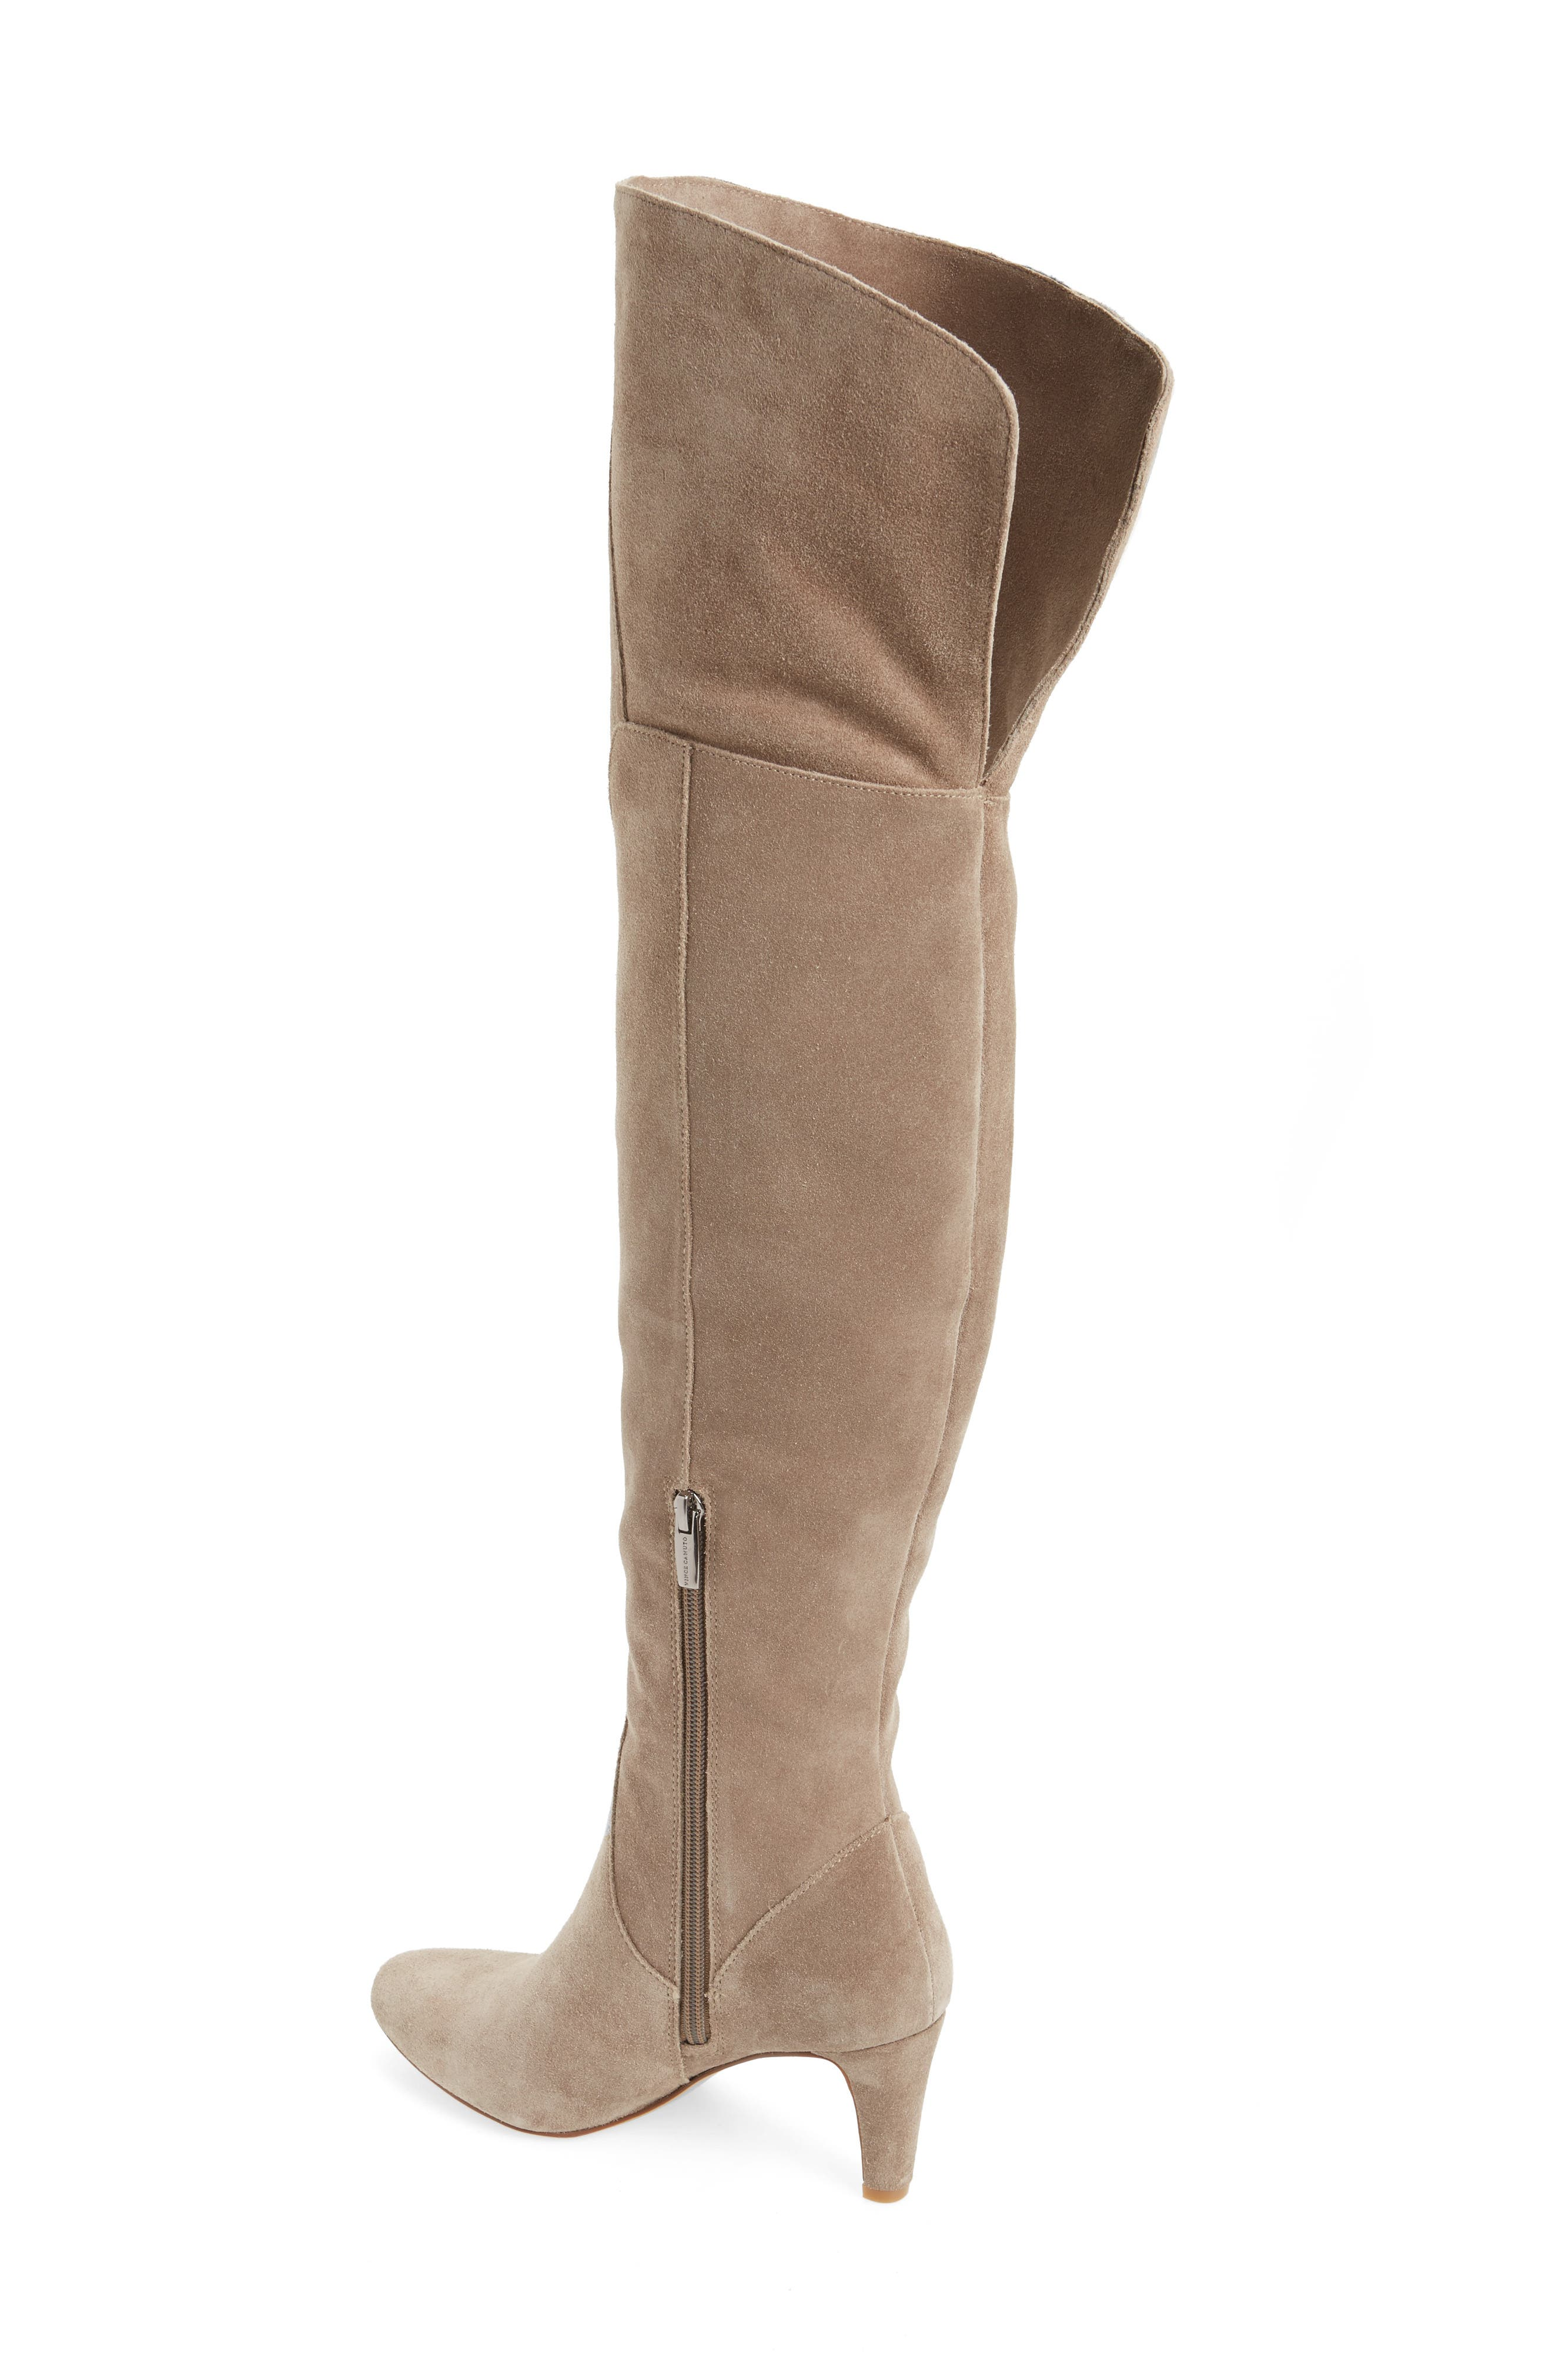 Armaceli Over the Knee Boot,                             Alternate thumbnail 7, color,